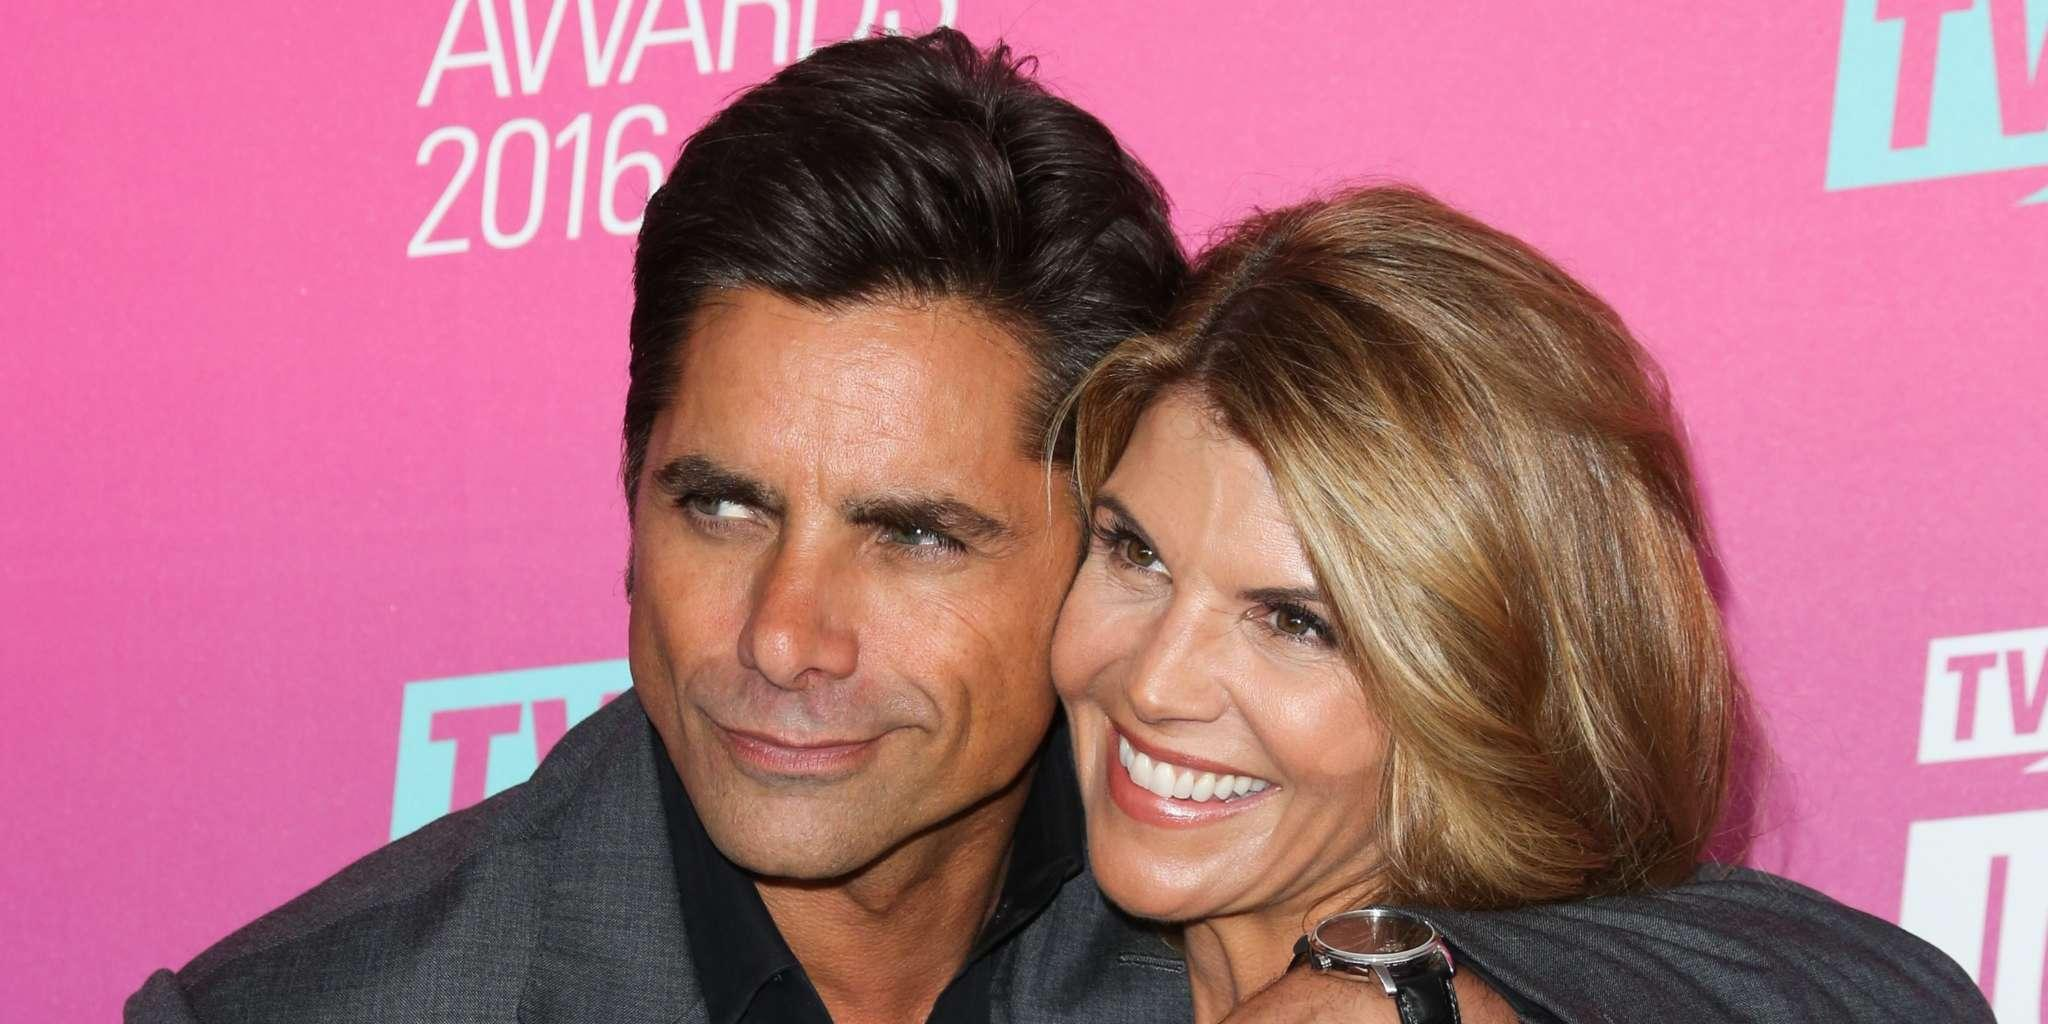 John Stamos Opens Up About The Lori Loughlin College Entrance Drama - It's A 'Difficult Situation'